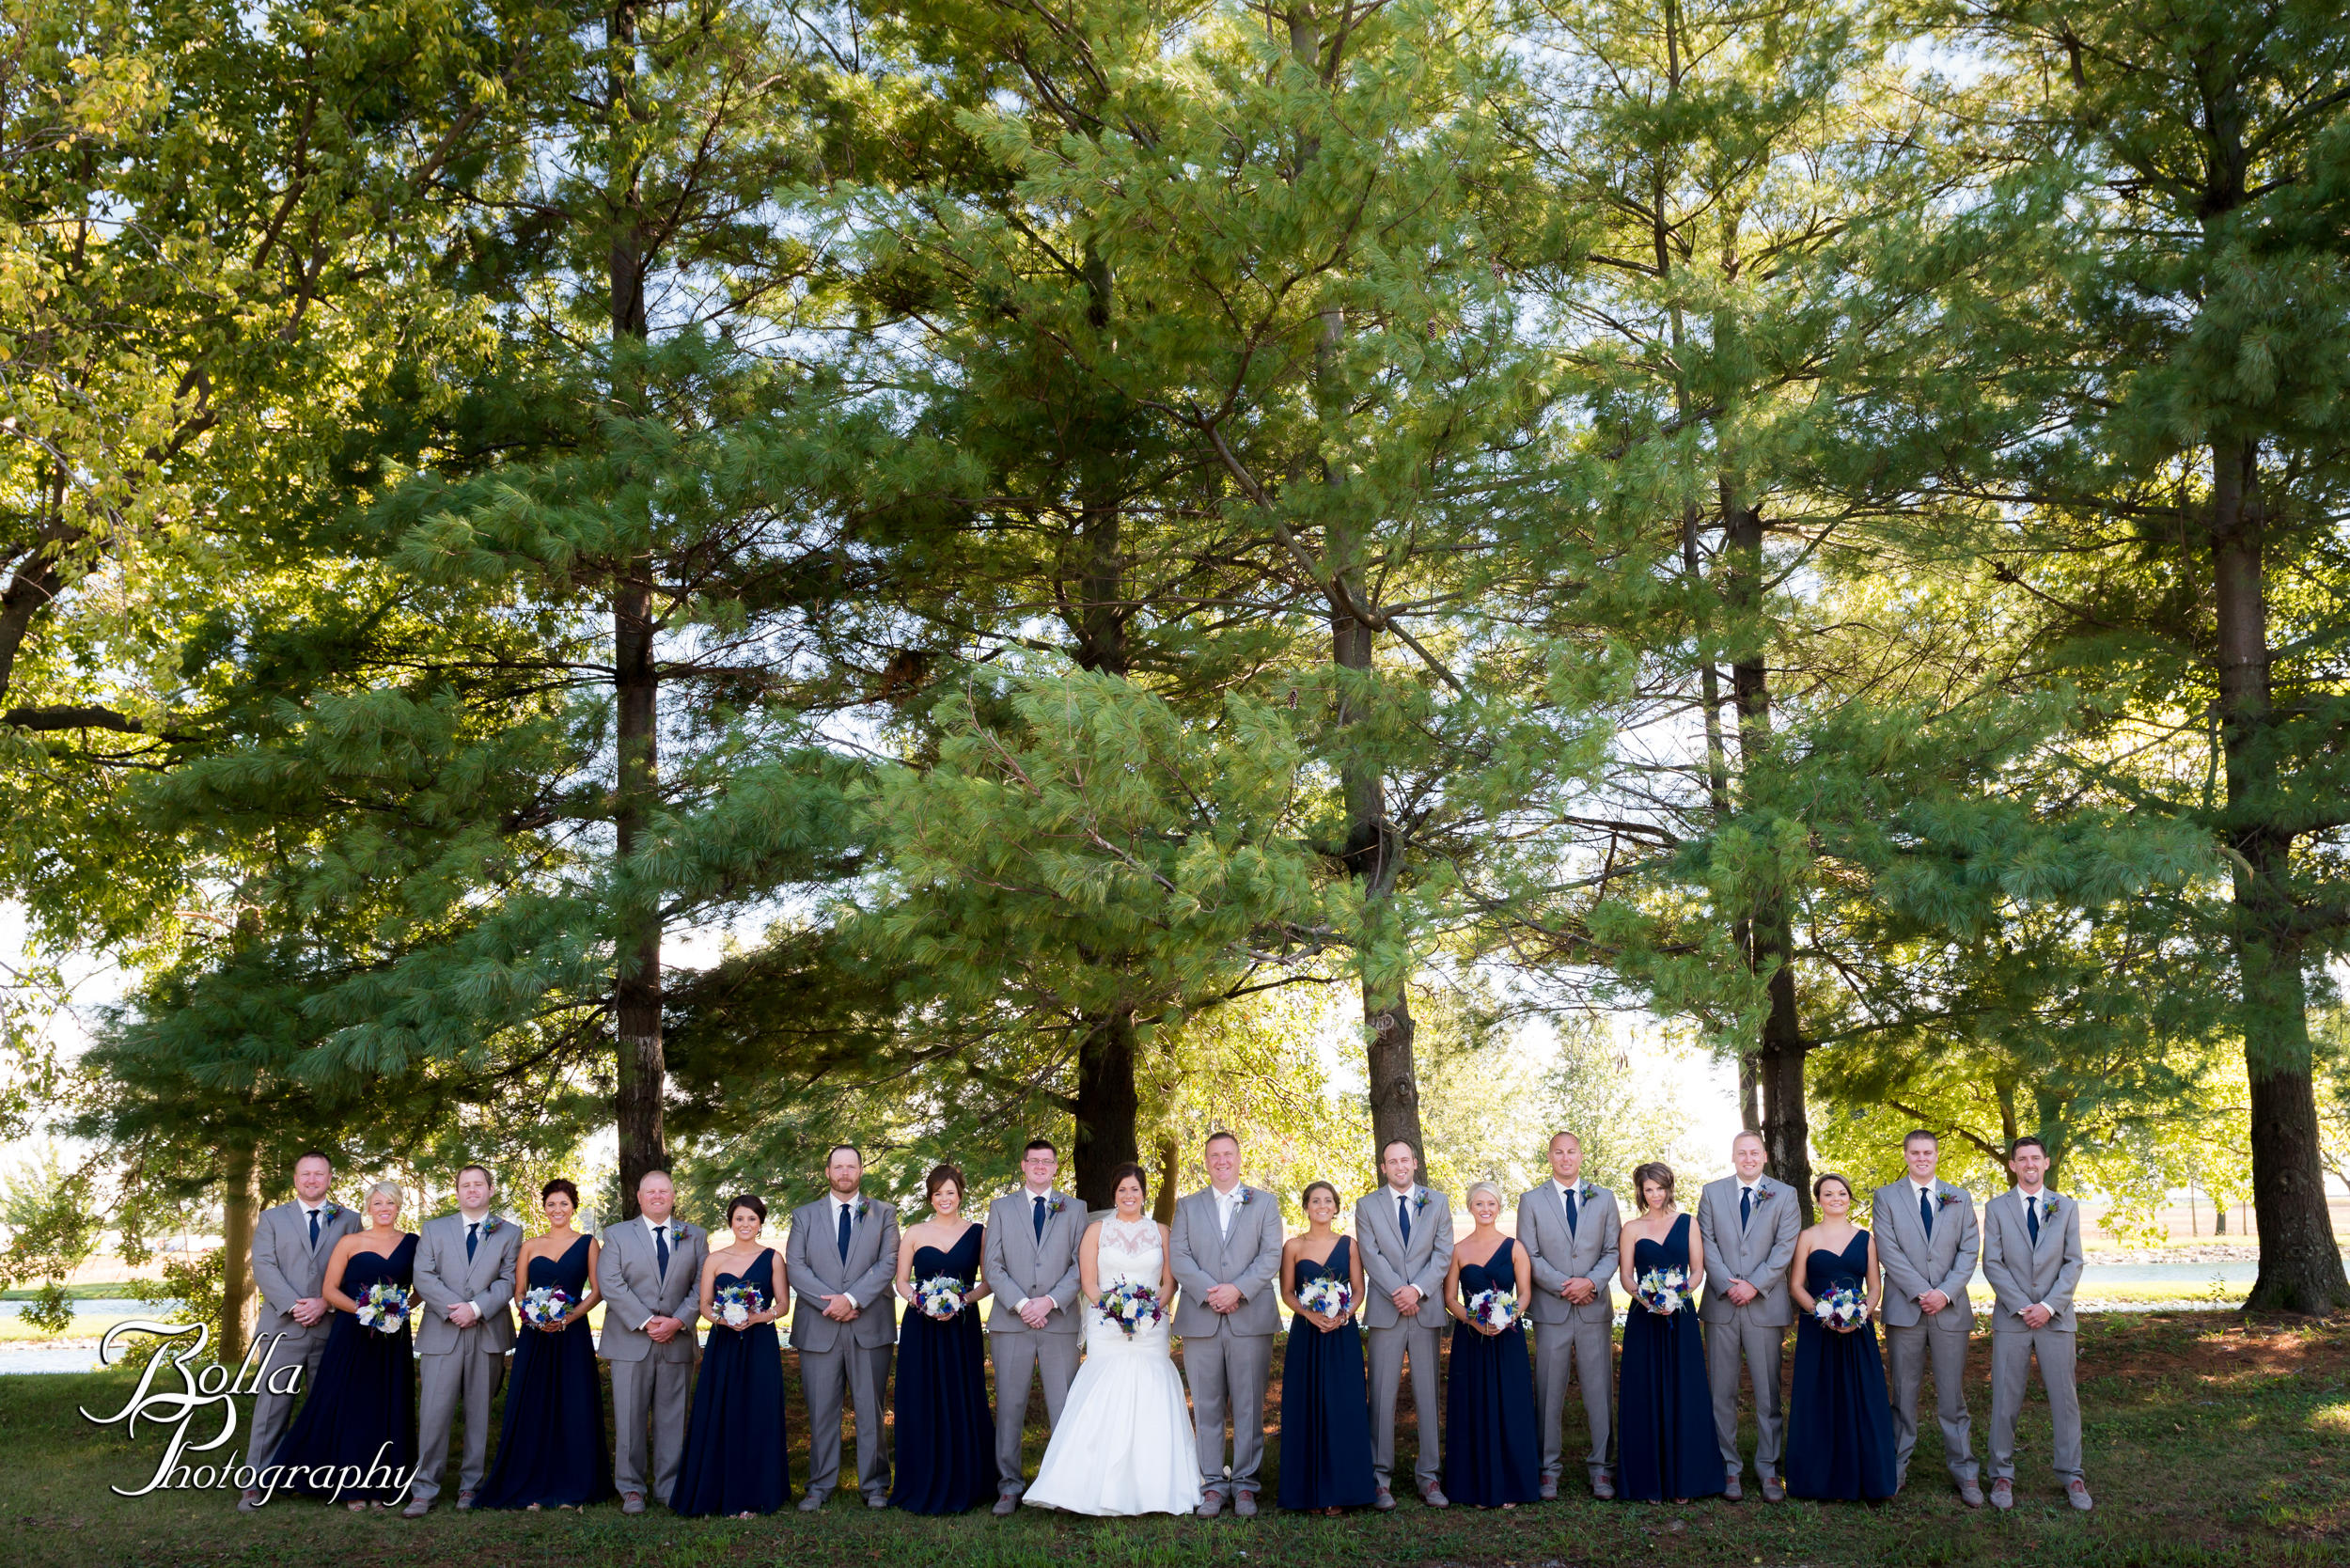 Bolla_photography_edwardsville_wedding_photographer_st_louis_weddings_Heinzmann-0005.jpg